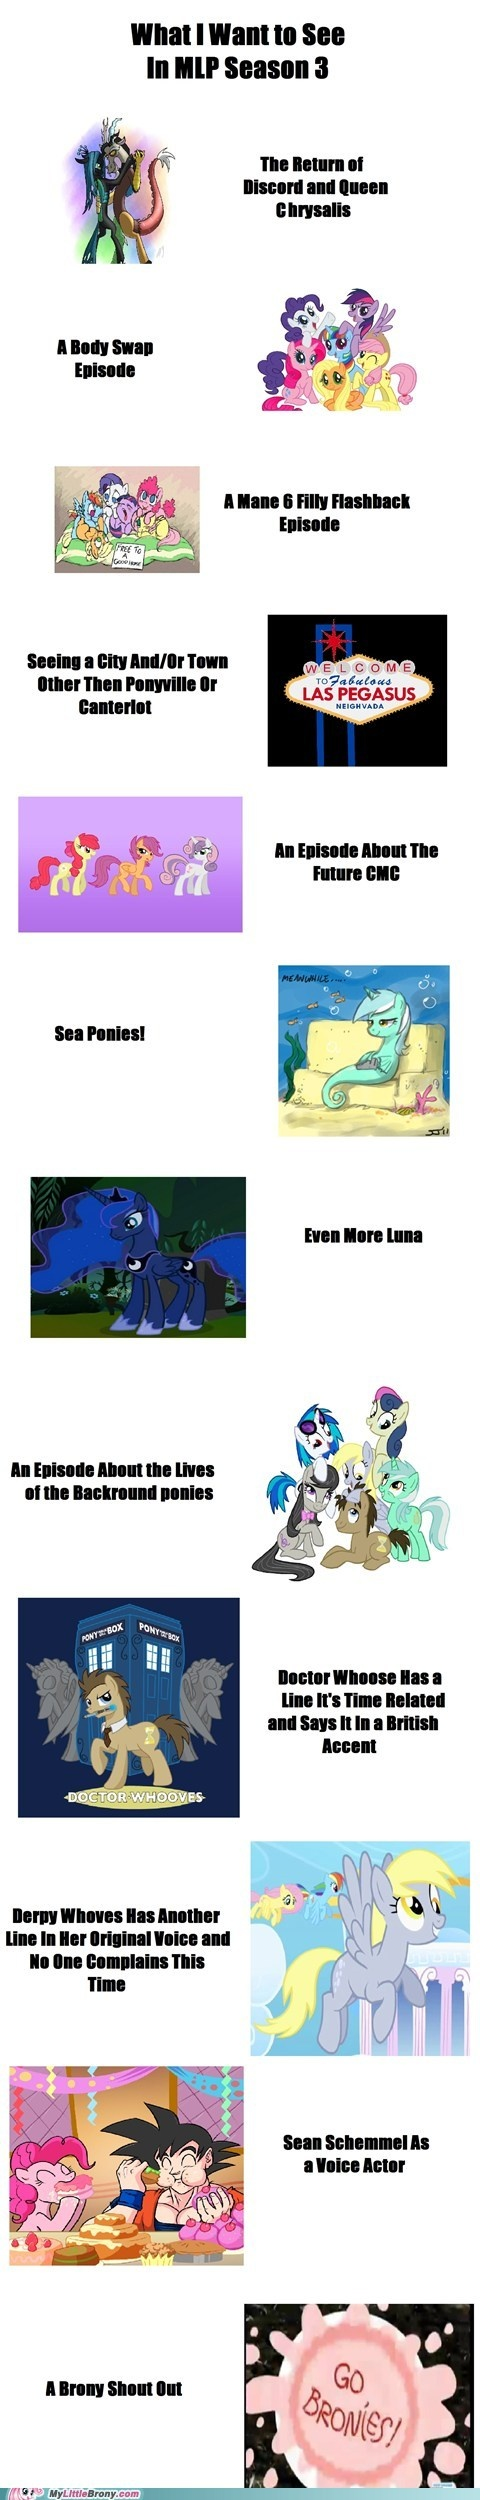 my little pony, friendship is magic, brony - Season 3 Predictions